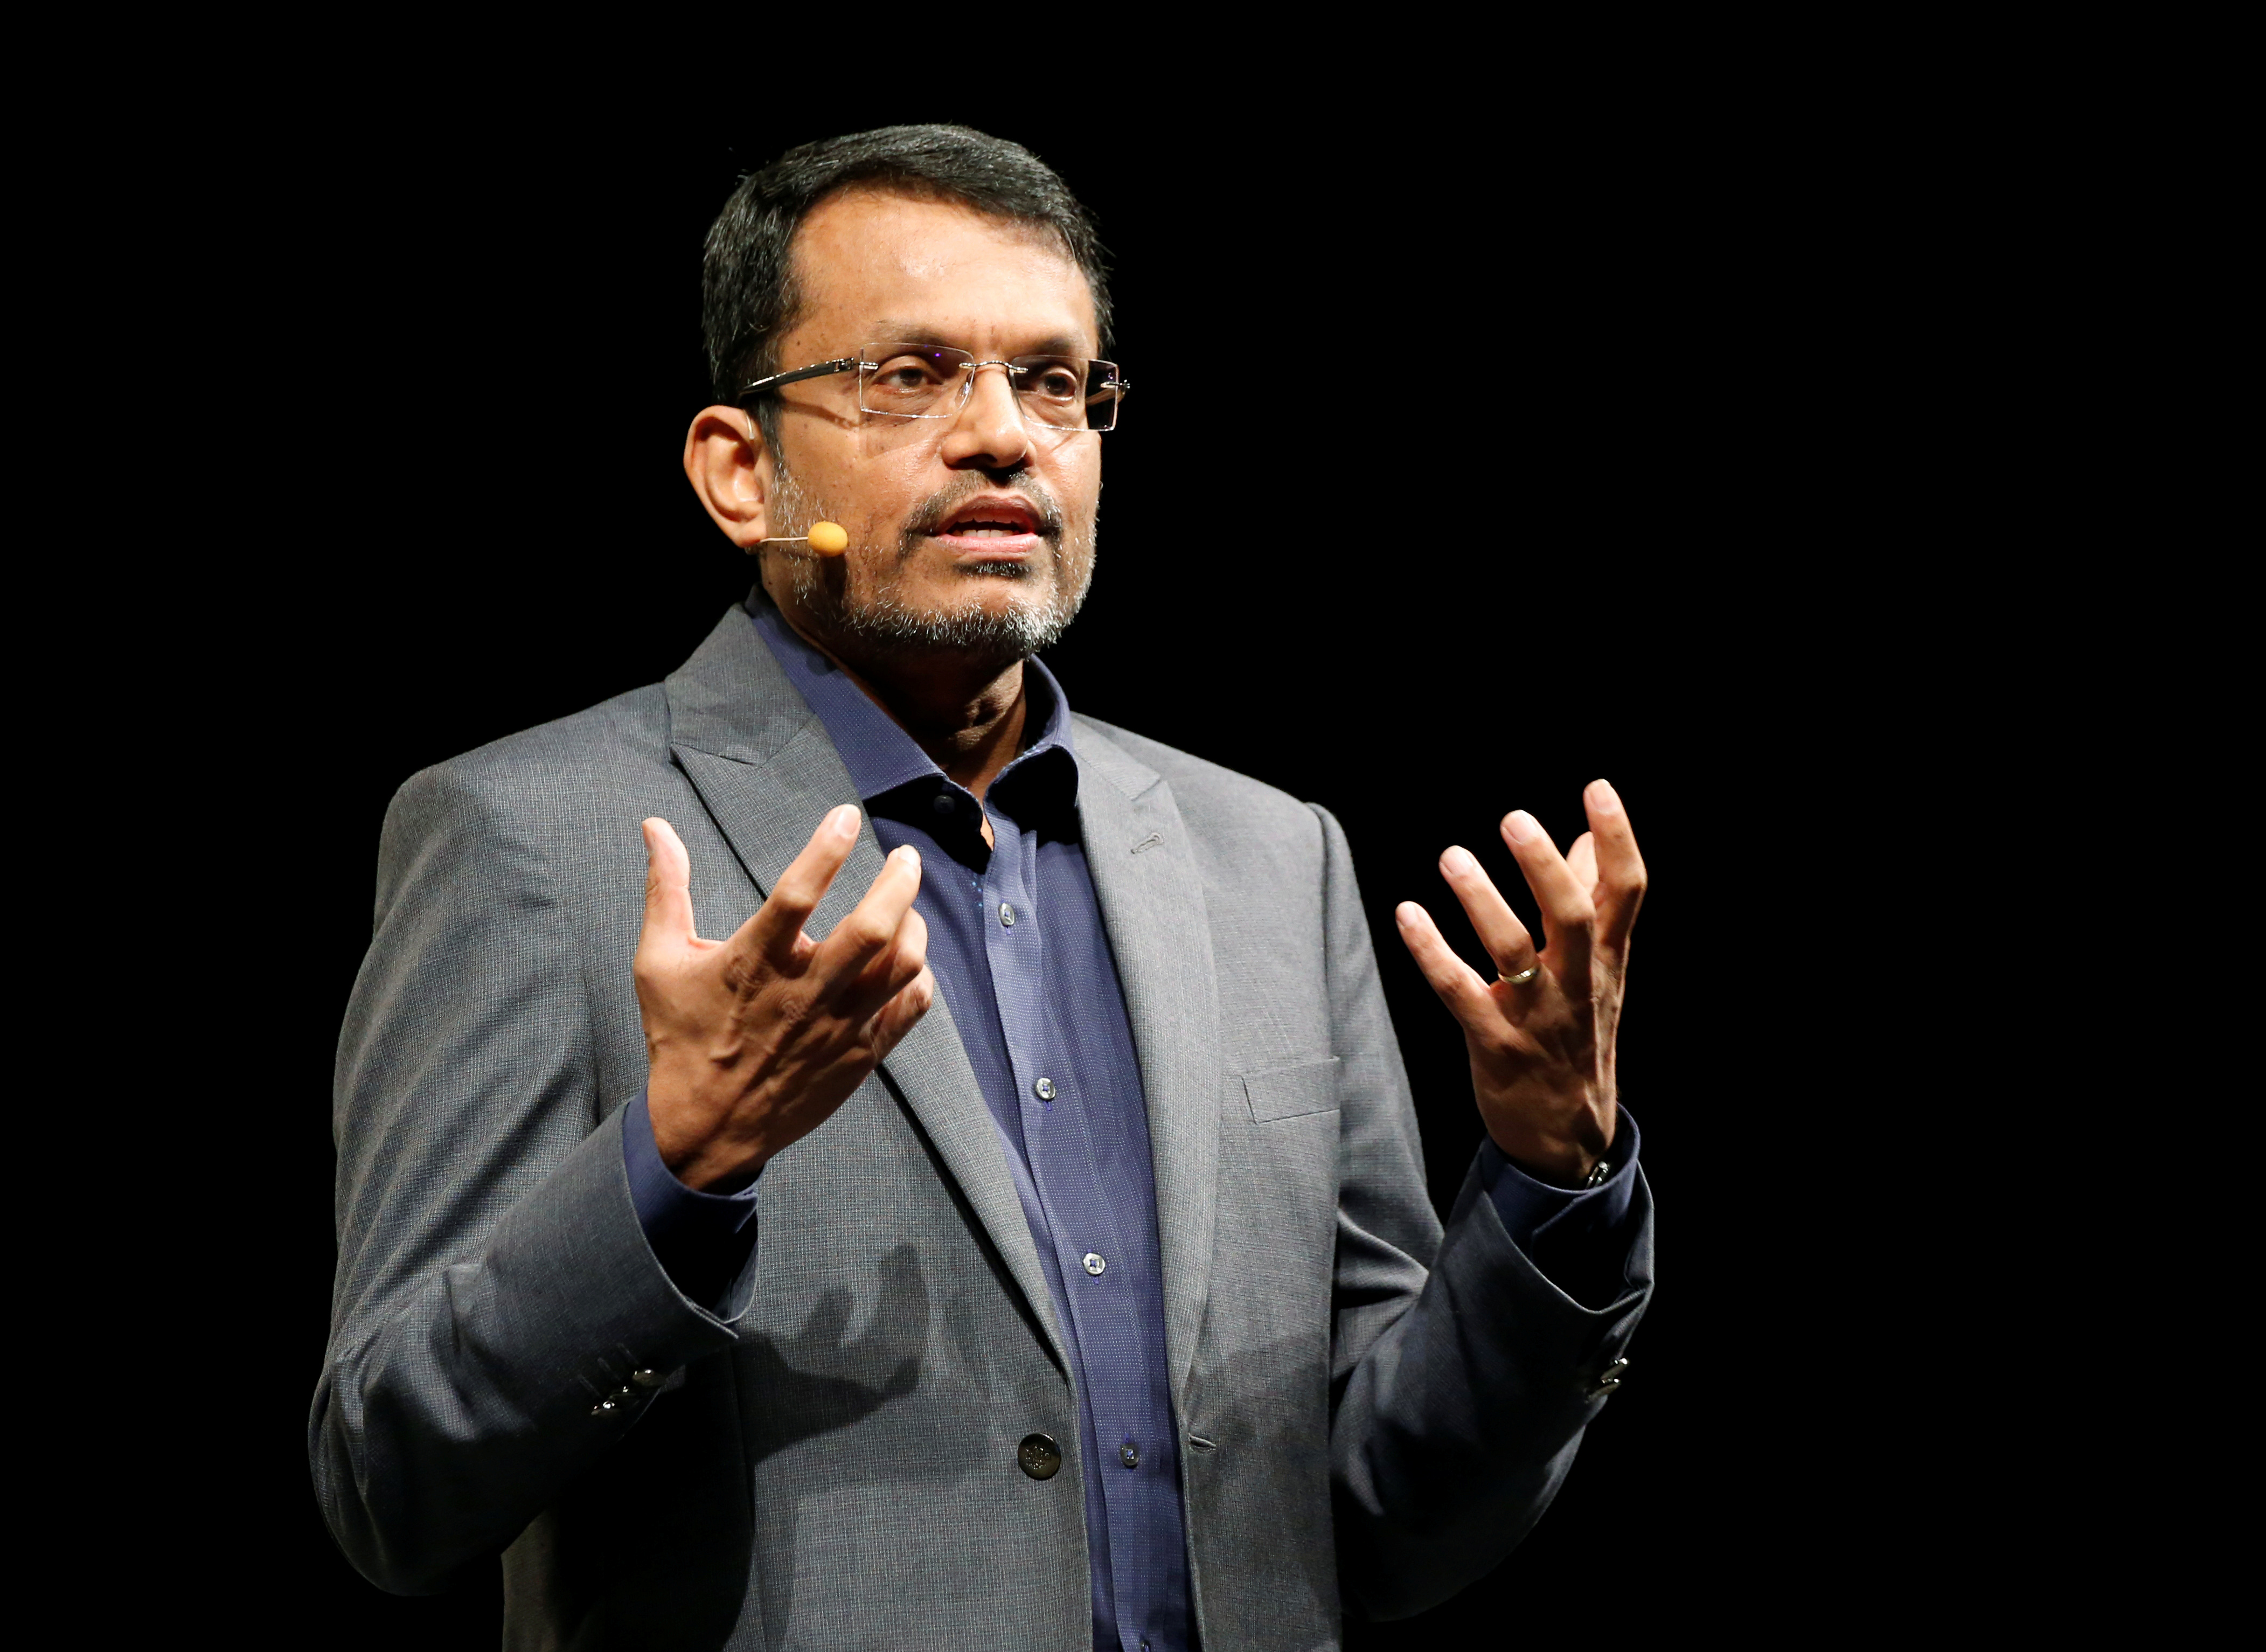 FILE - Ravi Menon, managing director of the Monetary Authority of Singapore (MAS), speaks at the Singapore Fintech Festival in Singapore Nov. 16, 2016.